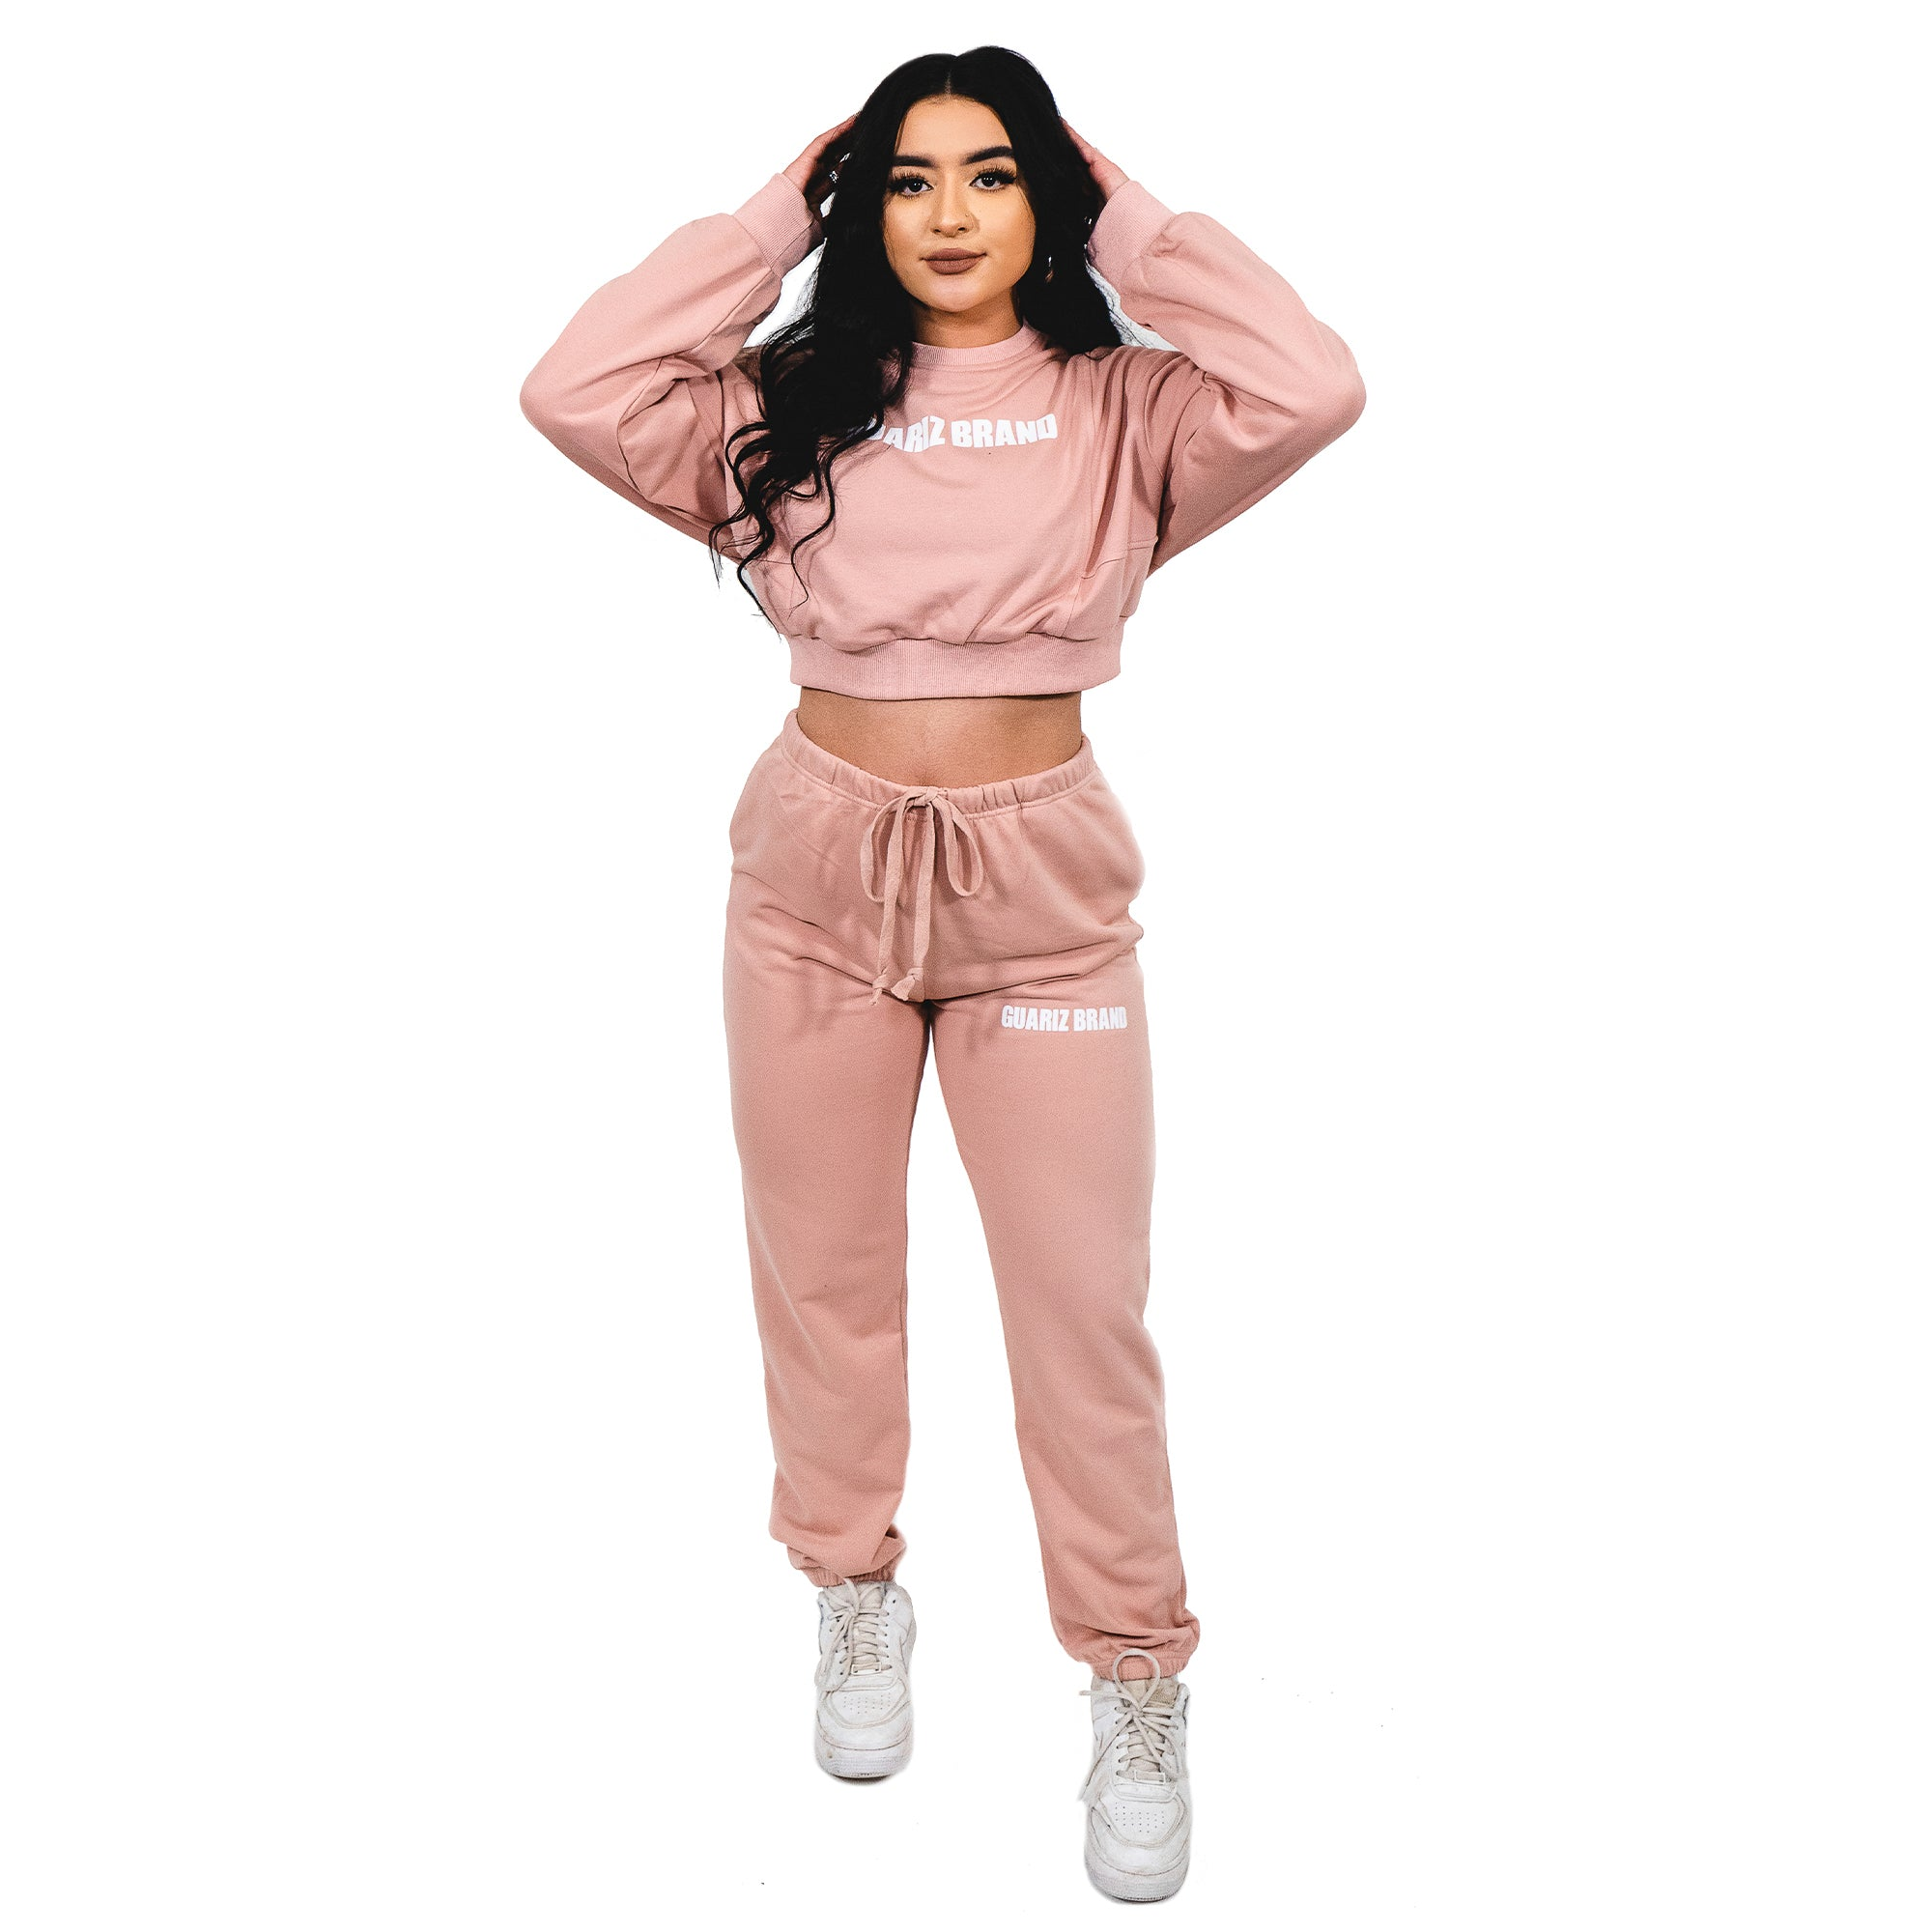 GUARIZ ESSENTIALS PEACH PINK TOP